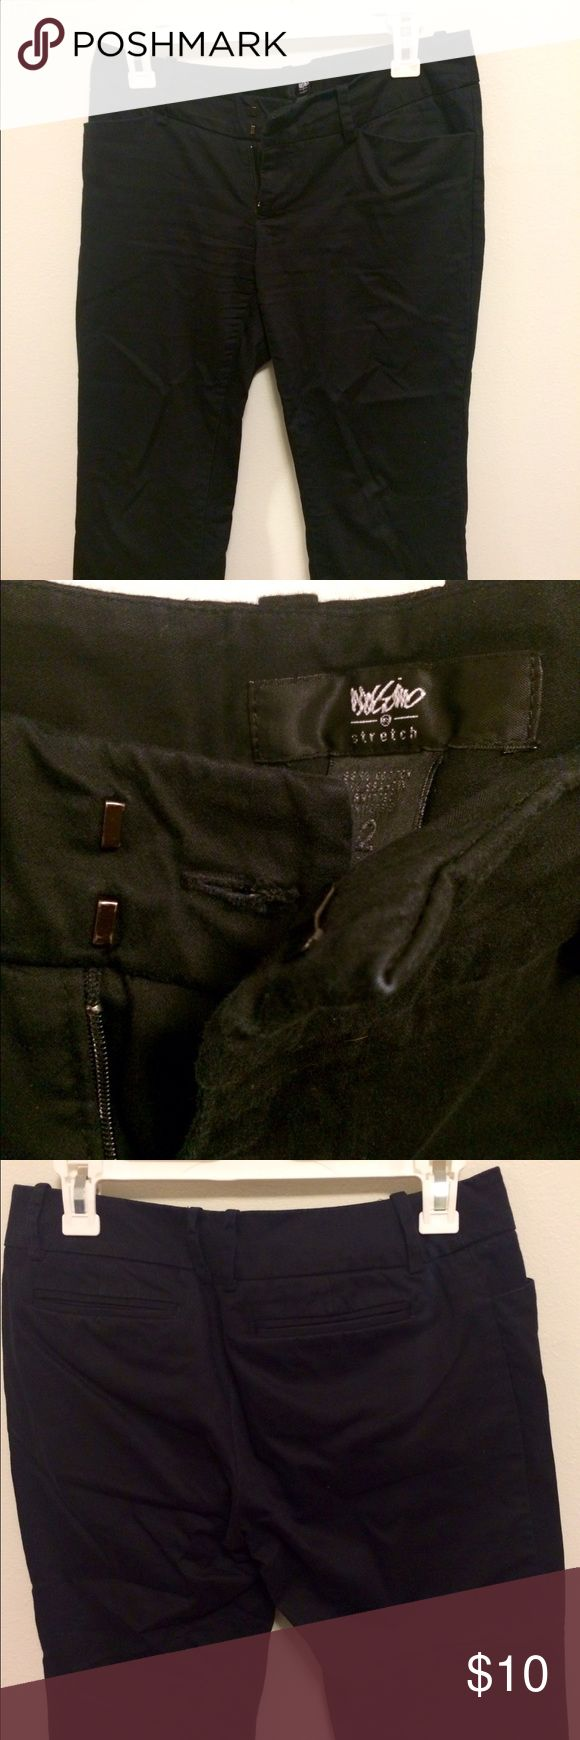 Black Capri trouser pants In great condition. True to size. Great for work. Mossimo Supply Co Pants Capris